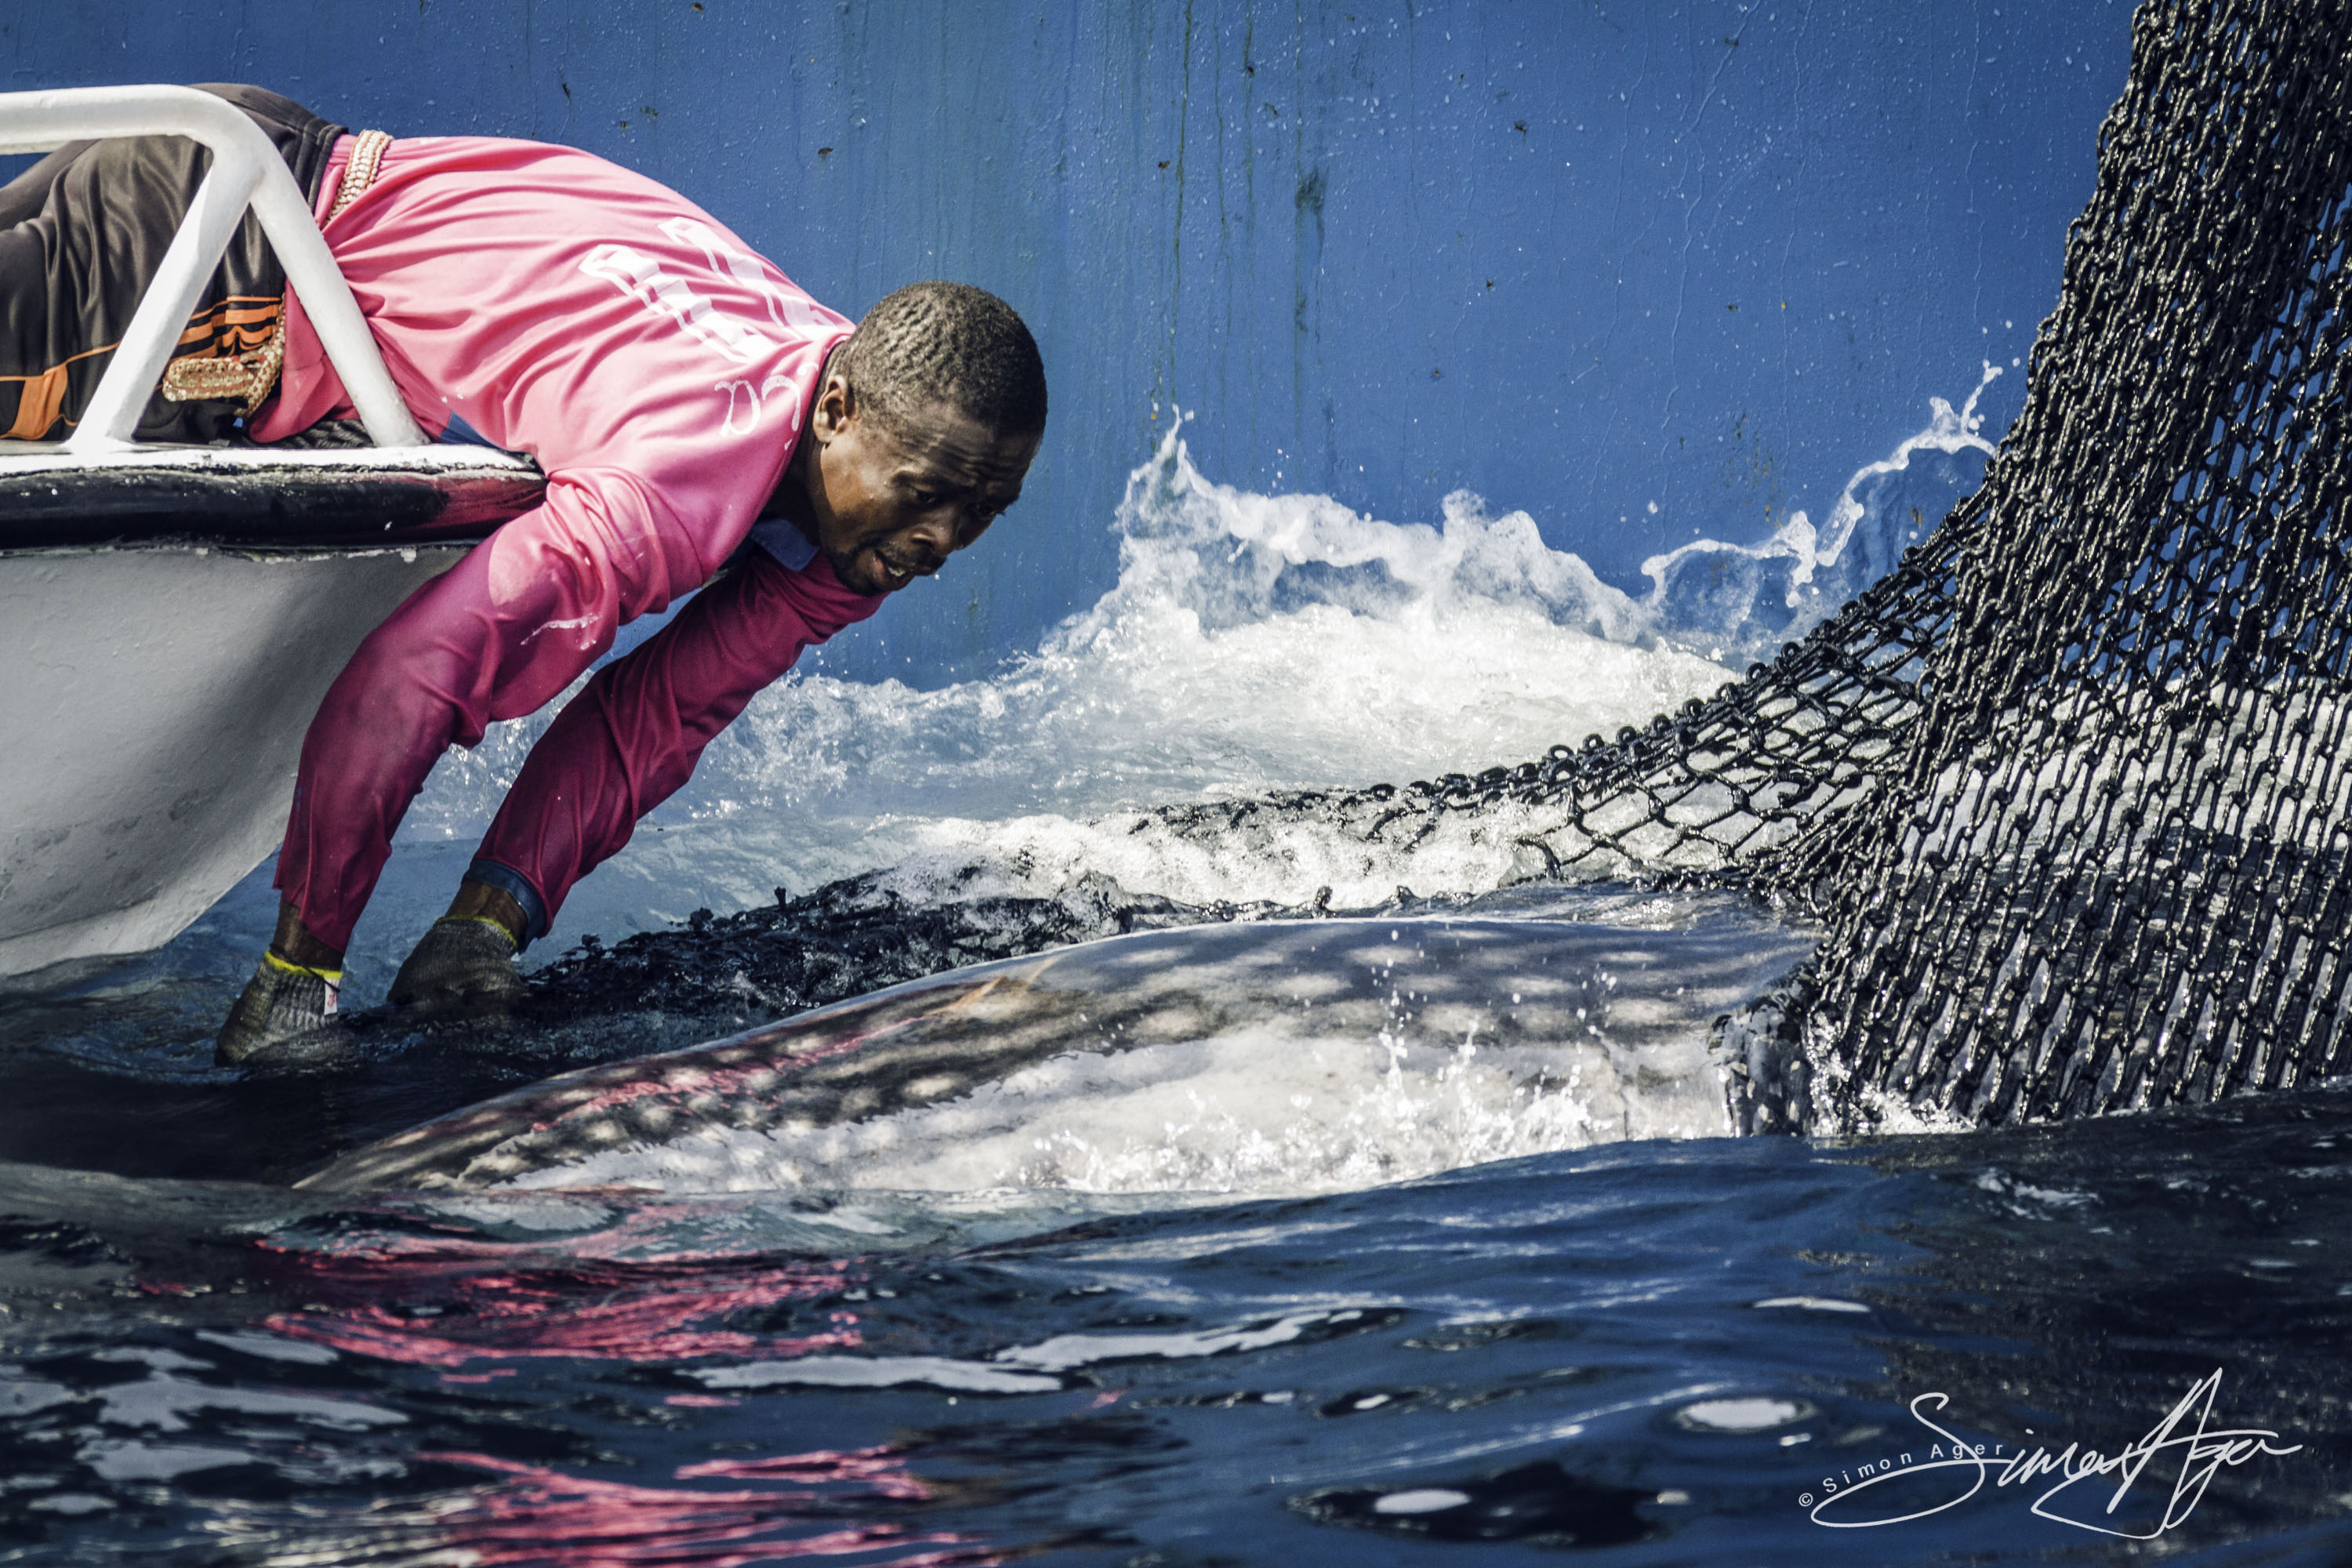 160630-SA-Txori-Berri-SS-crew-assist-in-freeing-of-whale-shark-from-purse-seiner-net-1869